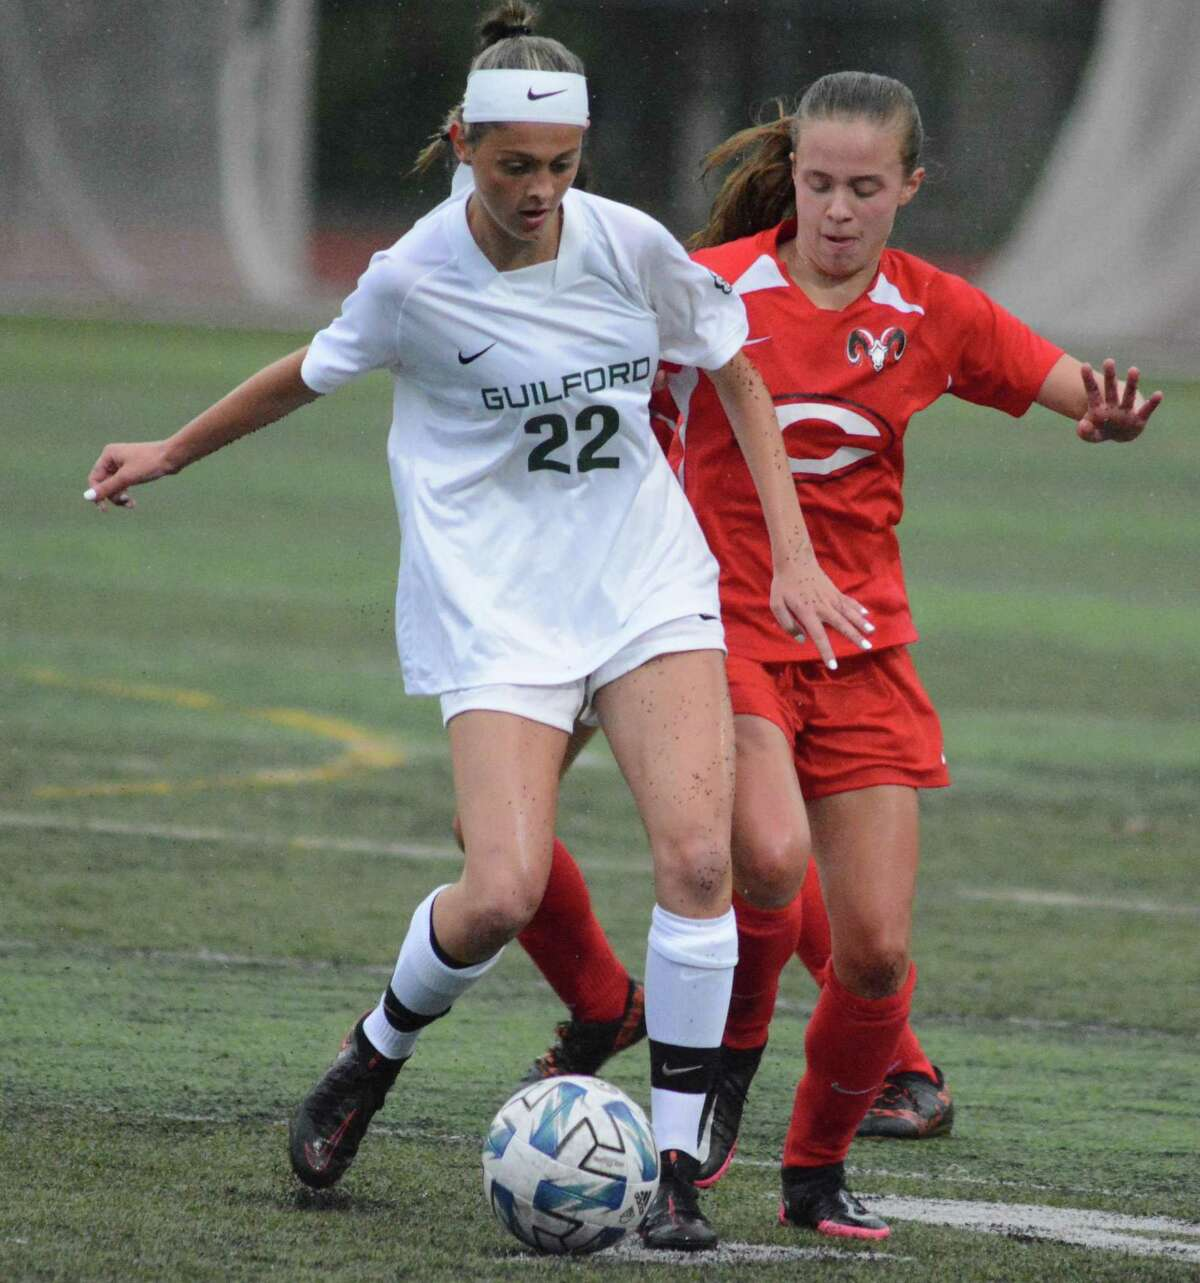 Guilford's Abby Sansone and Cheshire's Helene Lopez fight for the ball on Thursday.